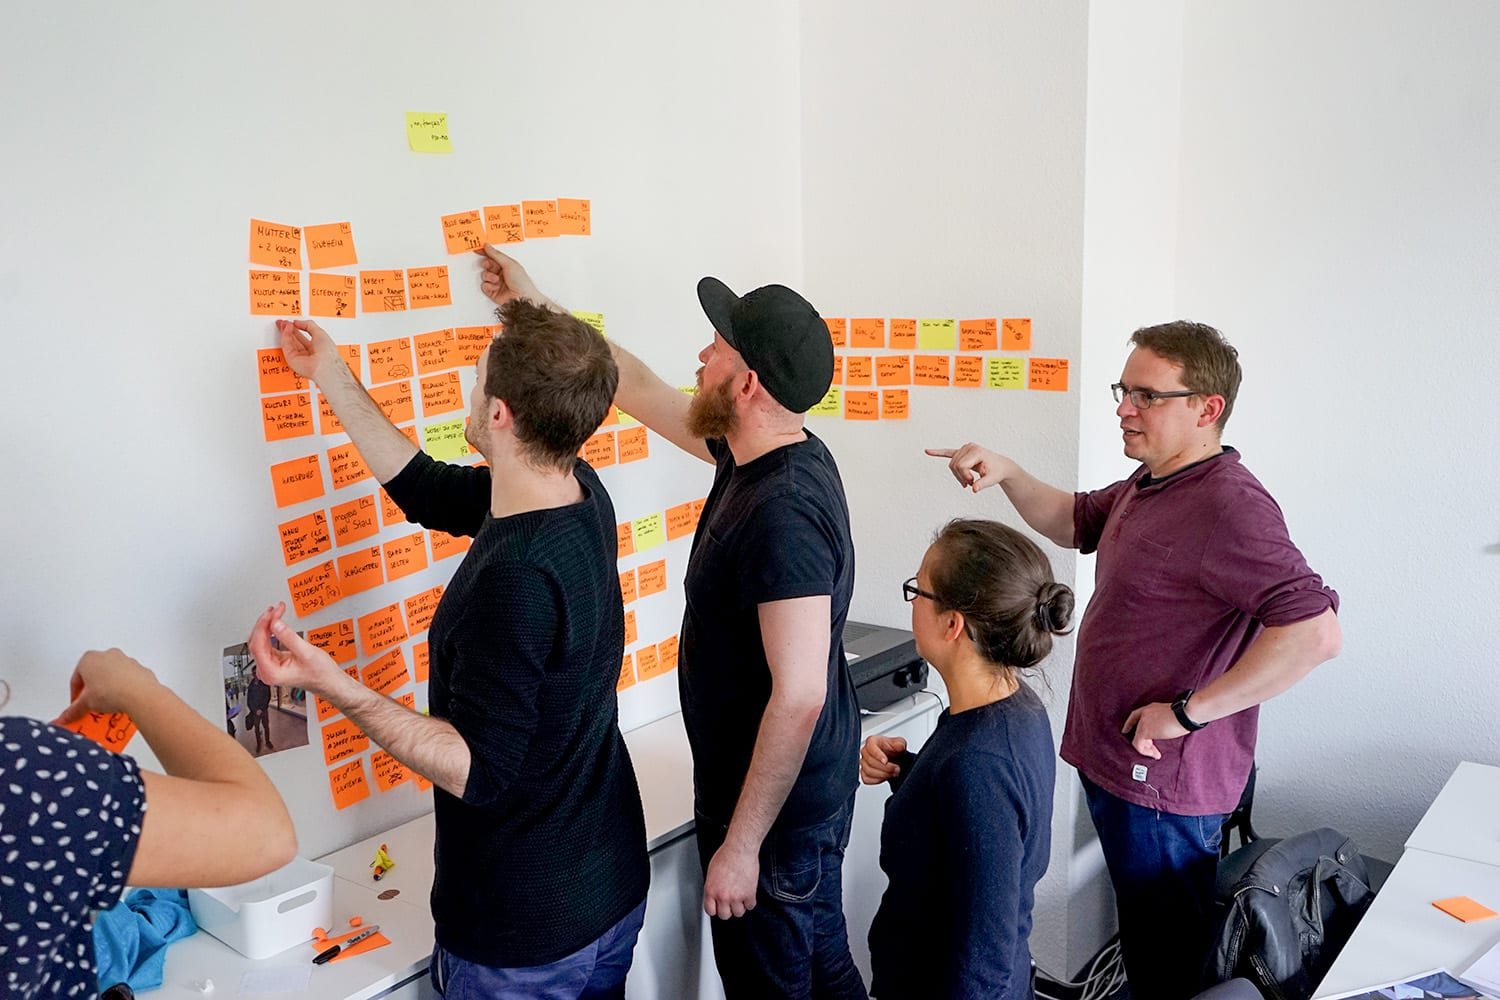 2 Tage Design Thinking-Workshop bei pixelpublic